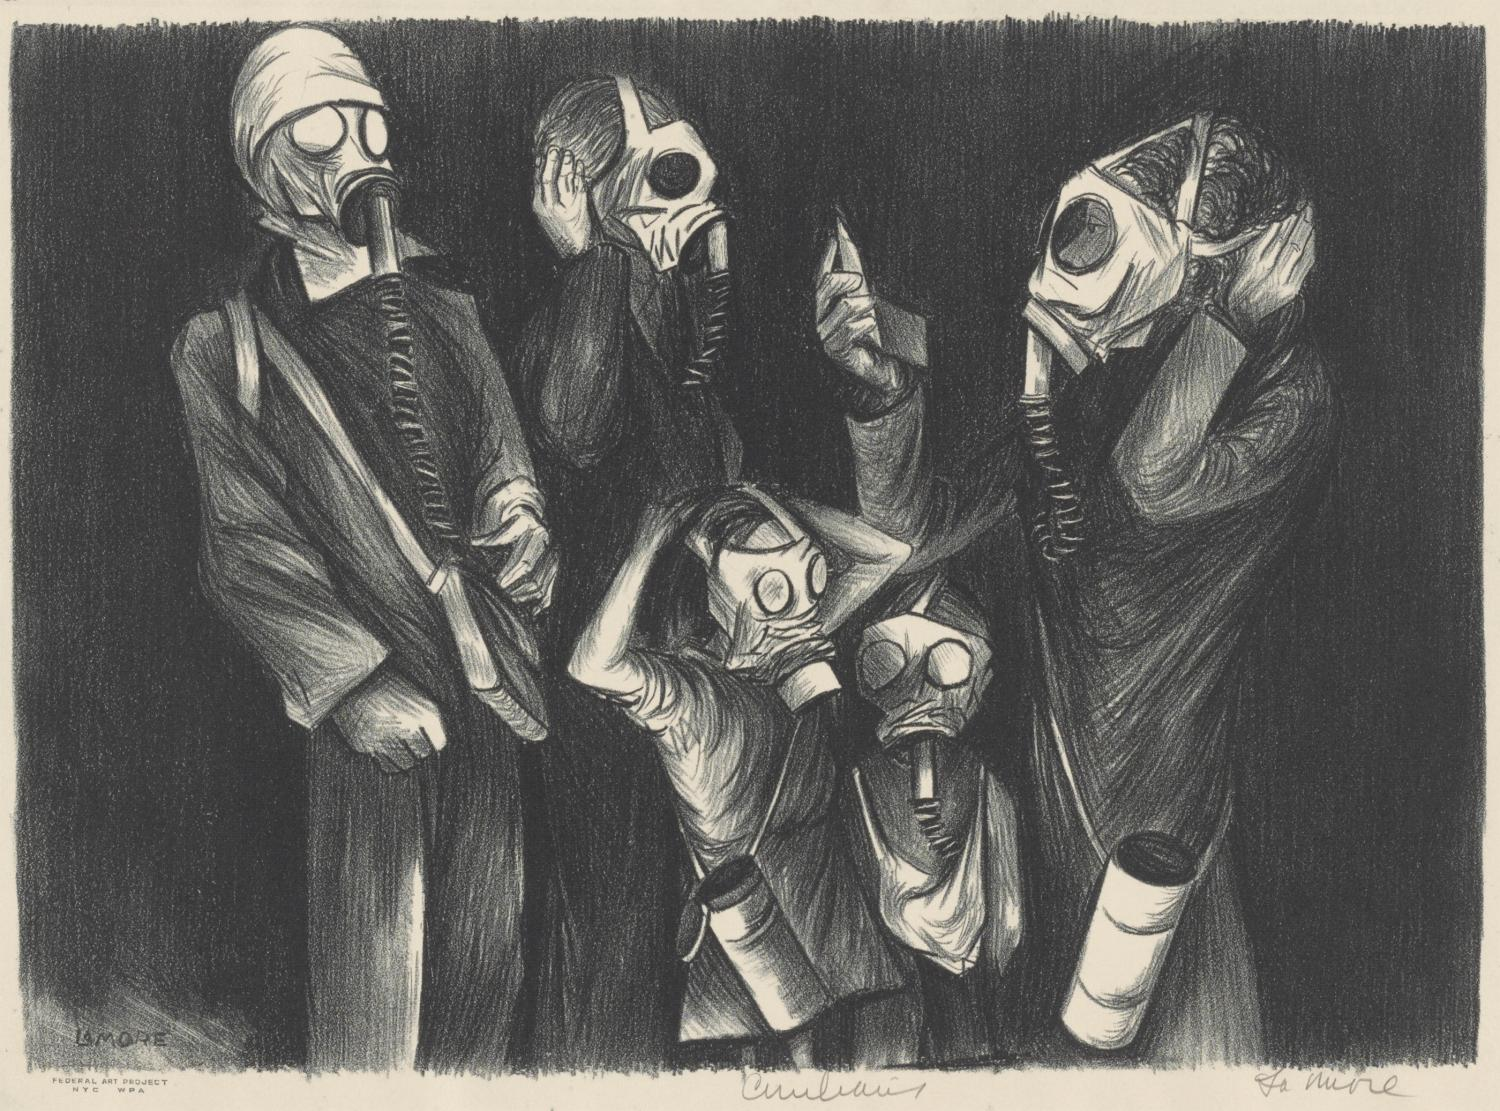 Chet La More, Civilians, ca. 1937. Lithograph. Allocated by the US Government, Commissioned through the New Deal art projects, 1943-4-231.